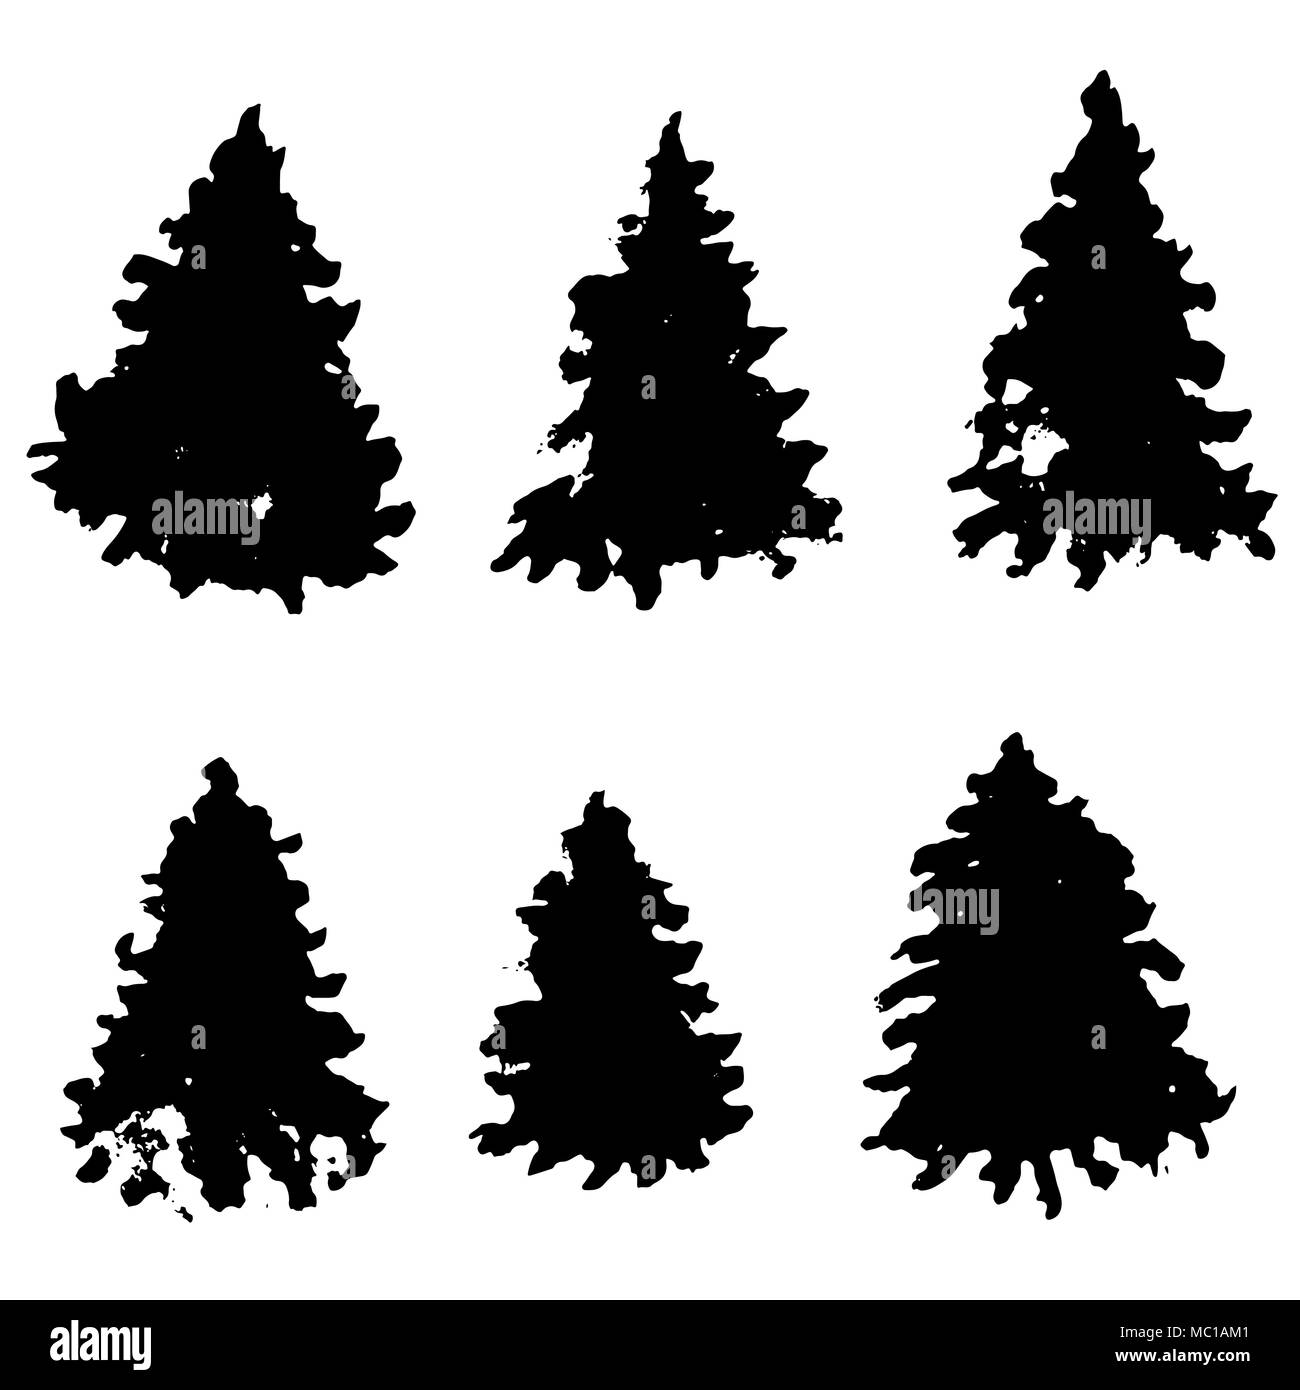 Set of fir tree silhouettes. Black grunge Christmas trees. Watercolor spruces isolated on white background. Vector illustration. - Stock Vector